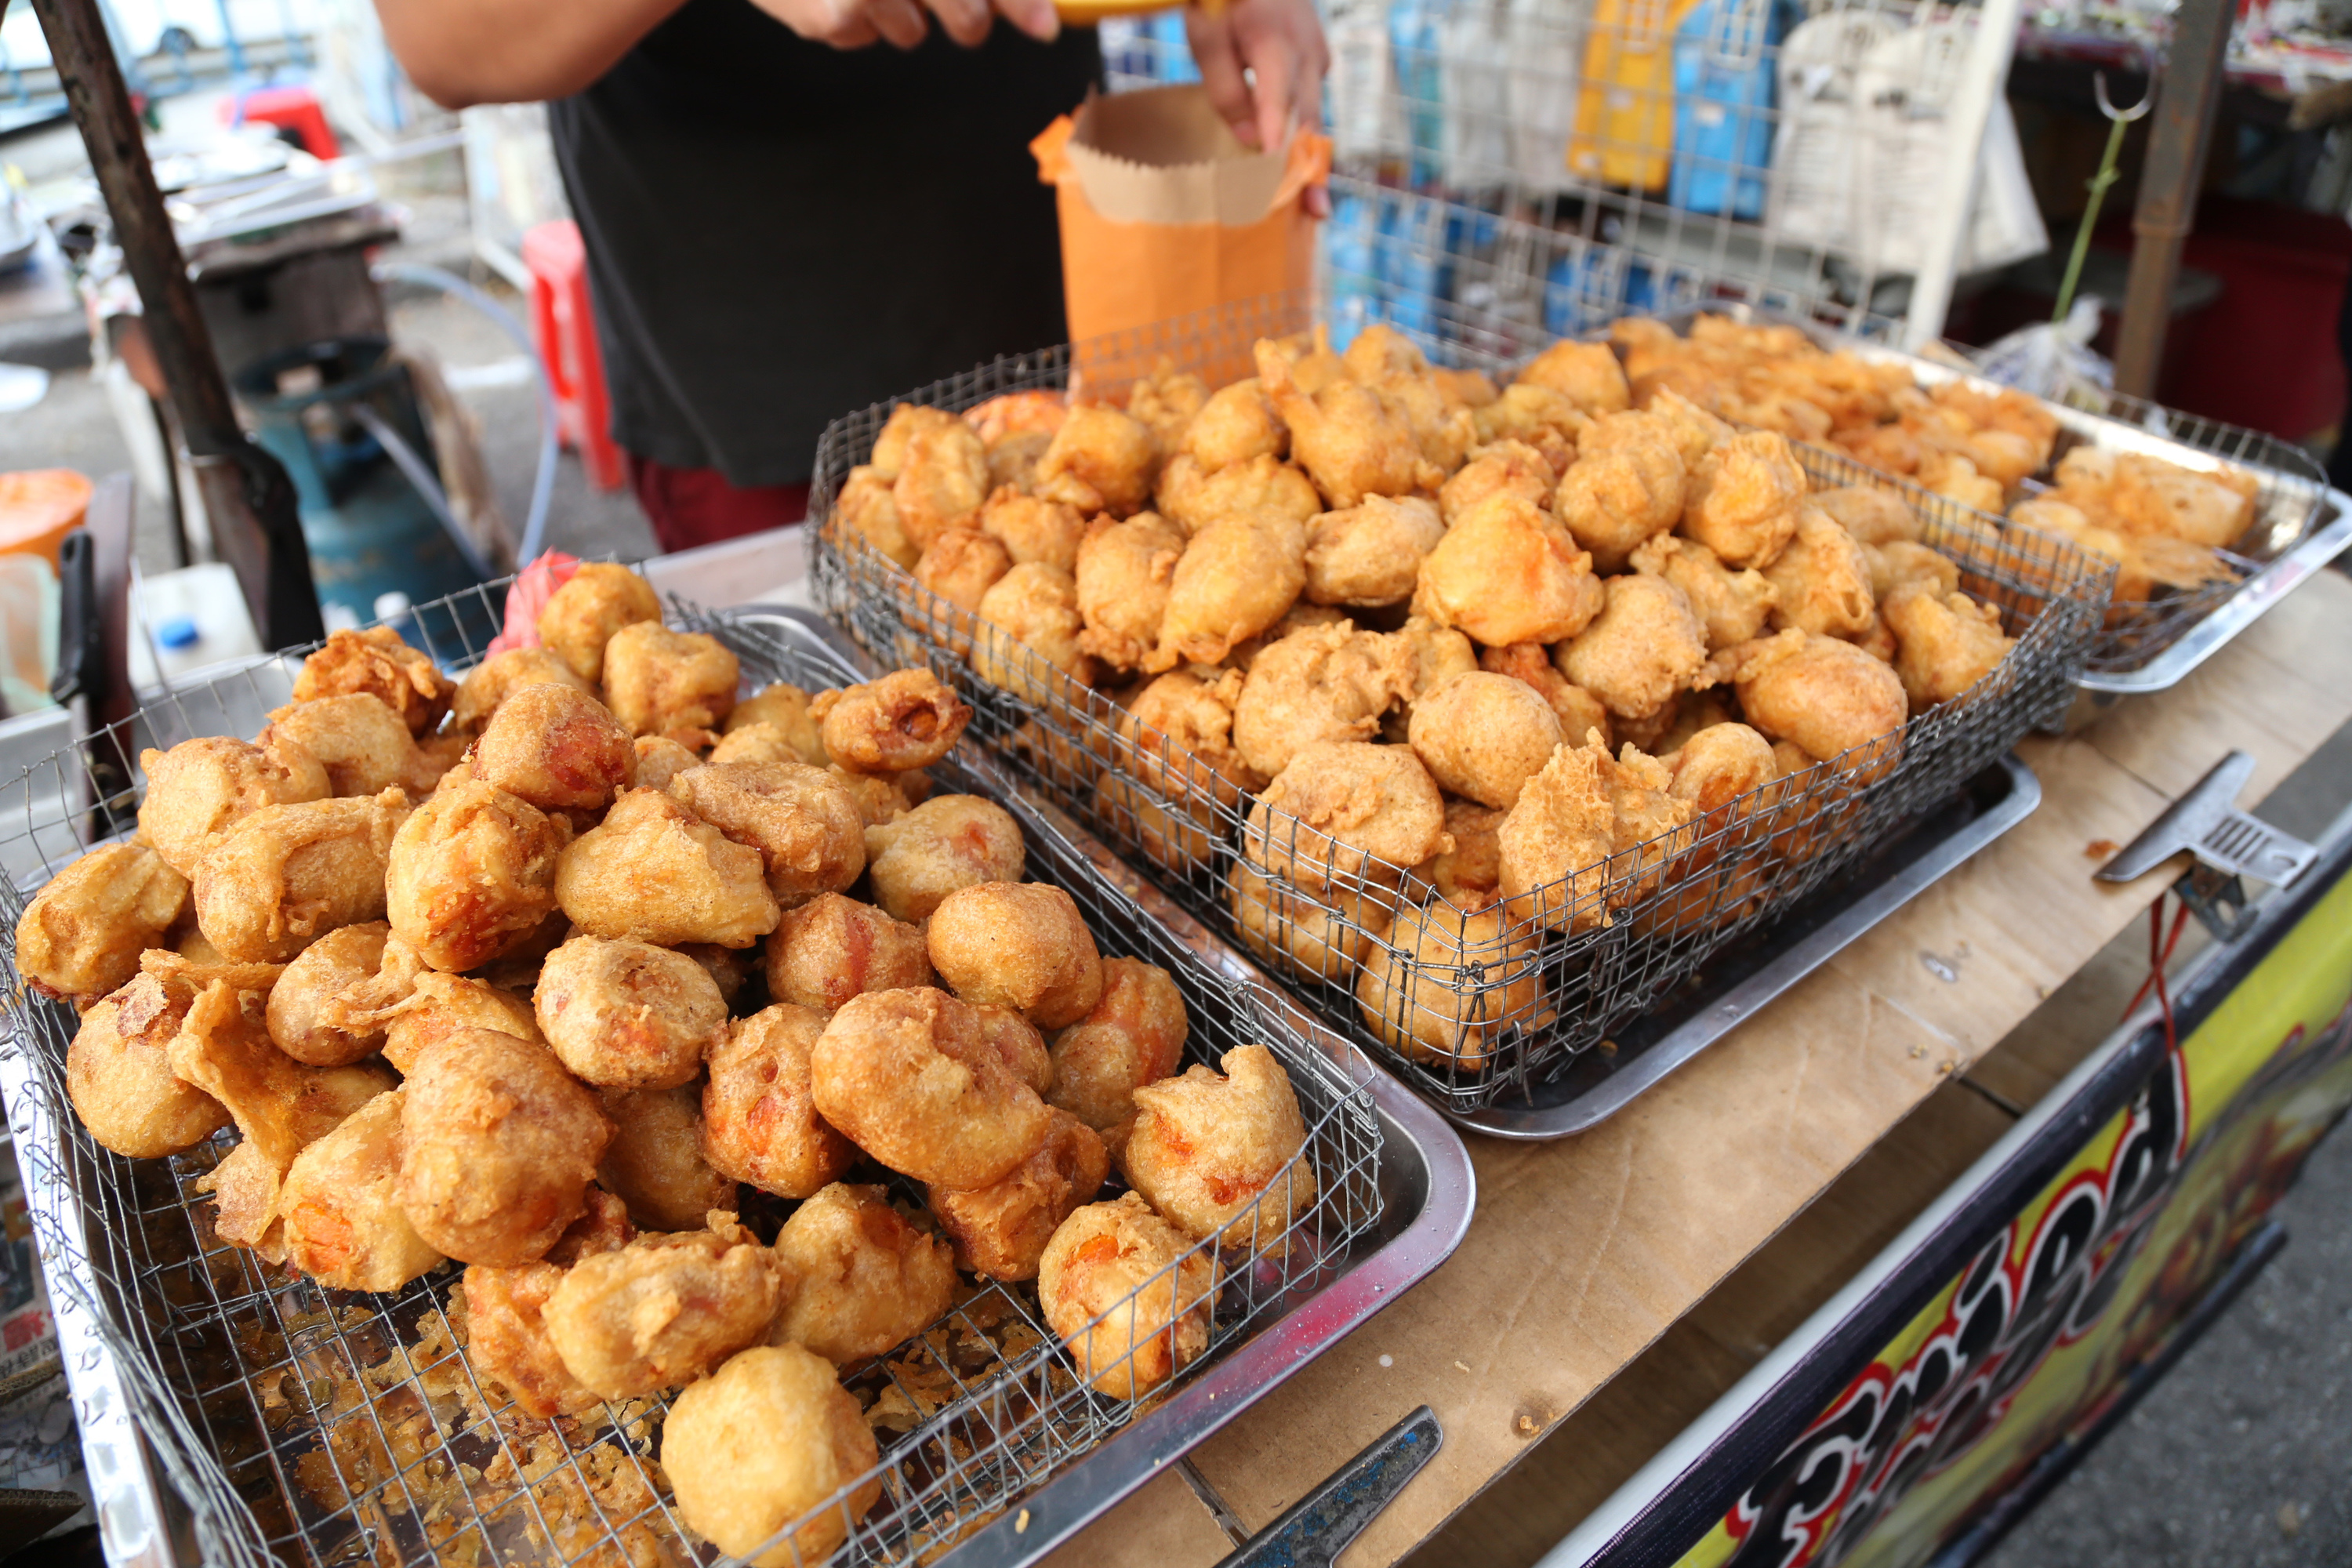 Fried durians